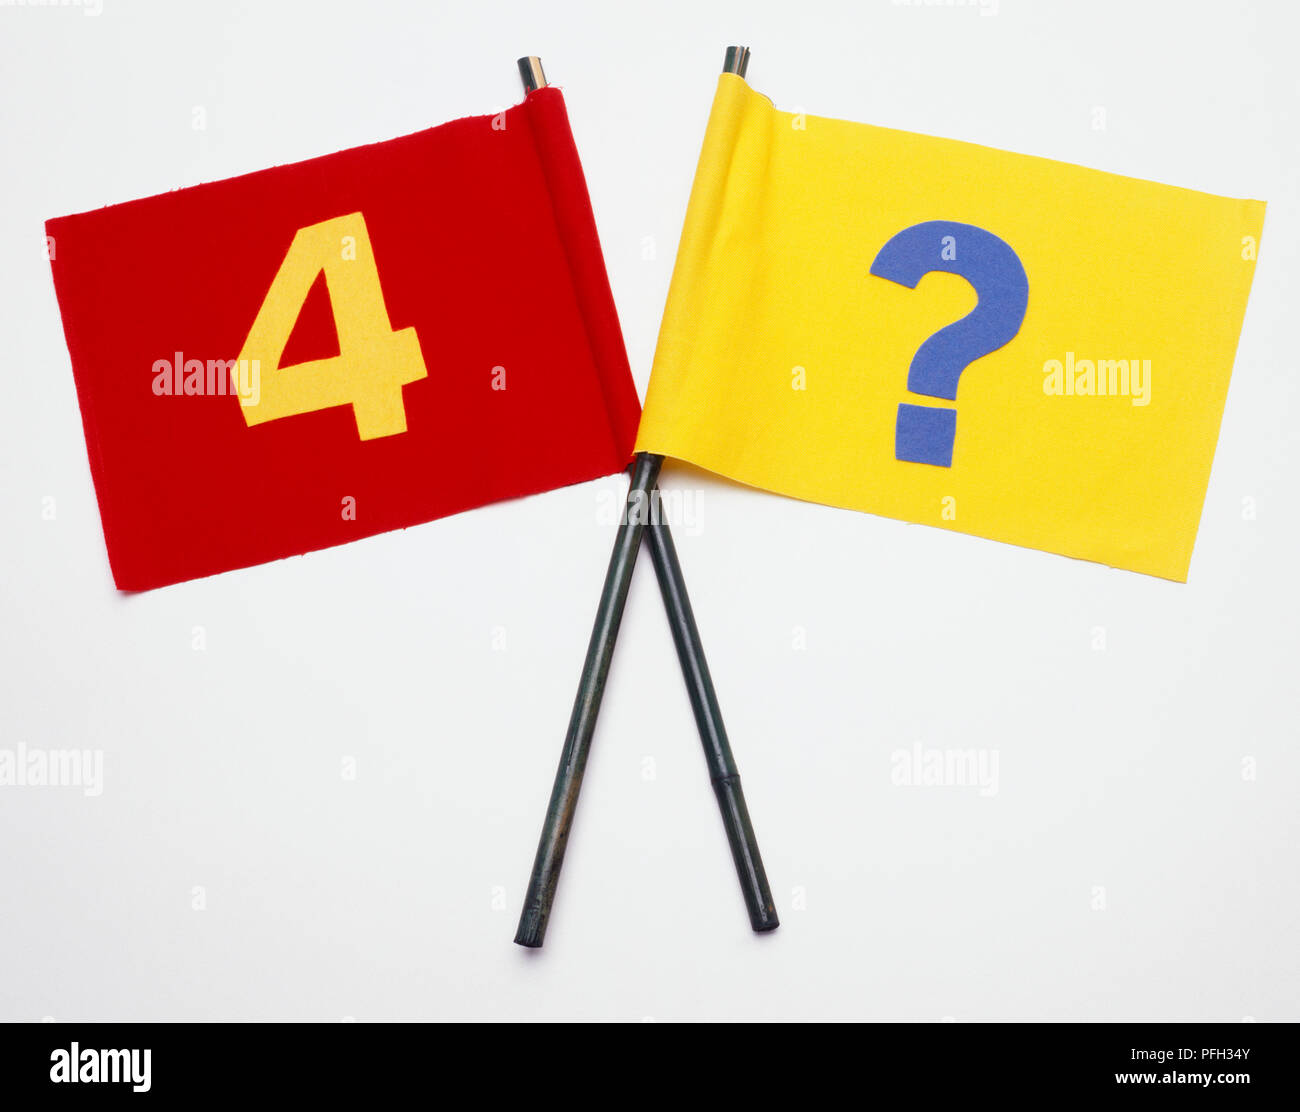 Two flags, one showing number 4, the other showing a blue question mark - Stock Image